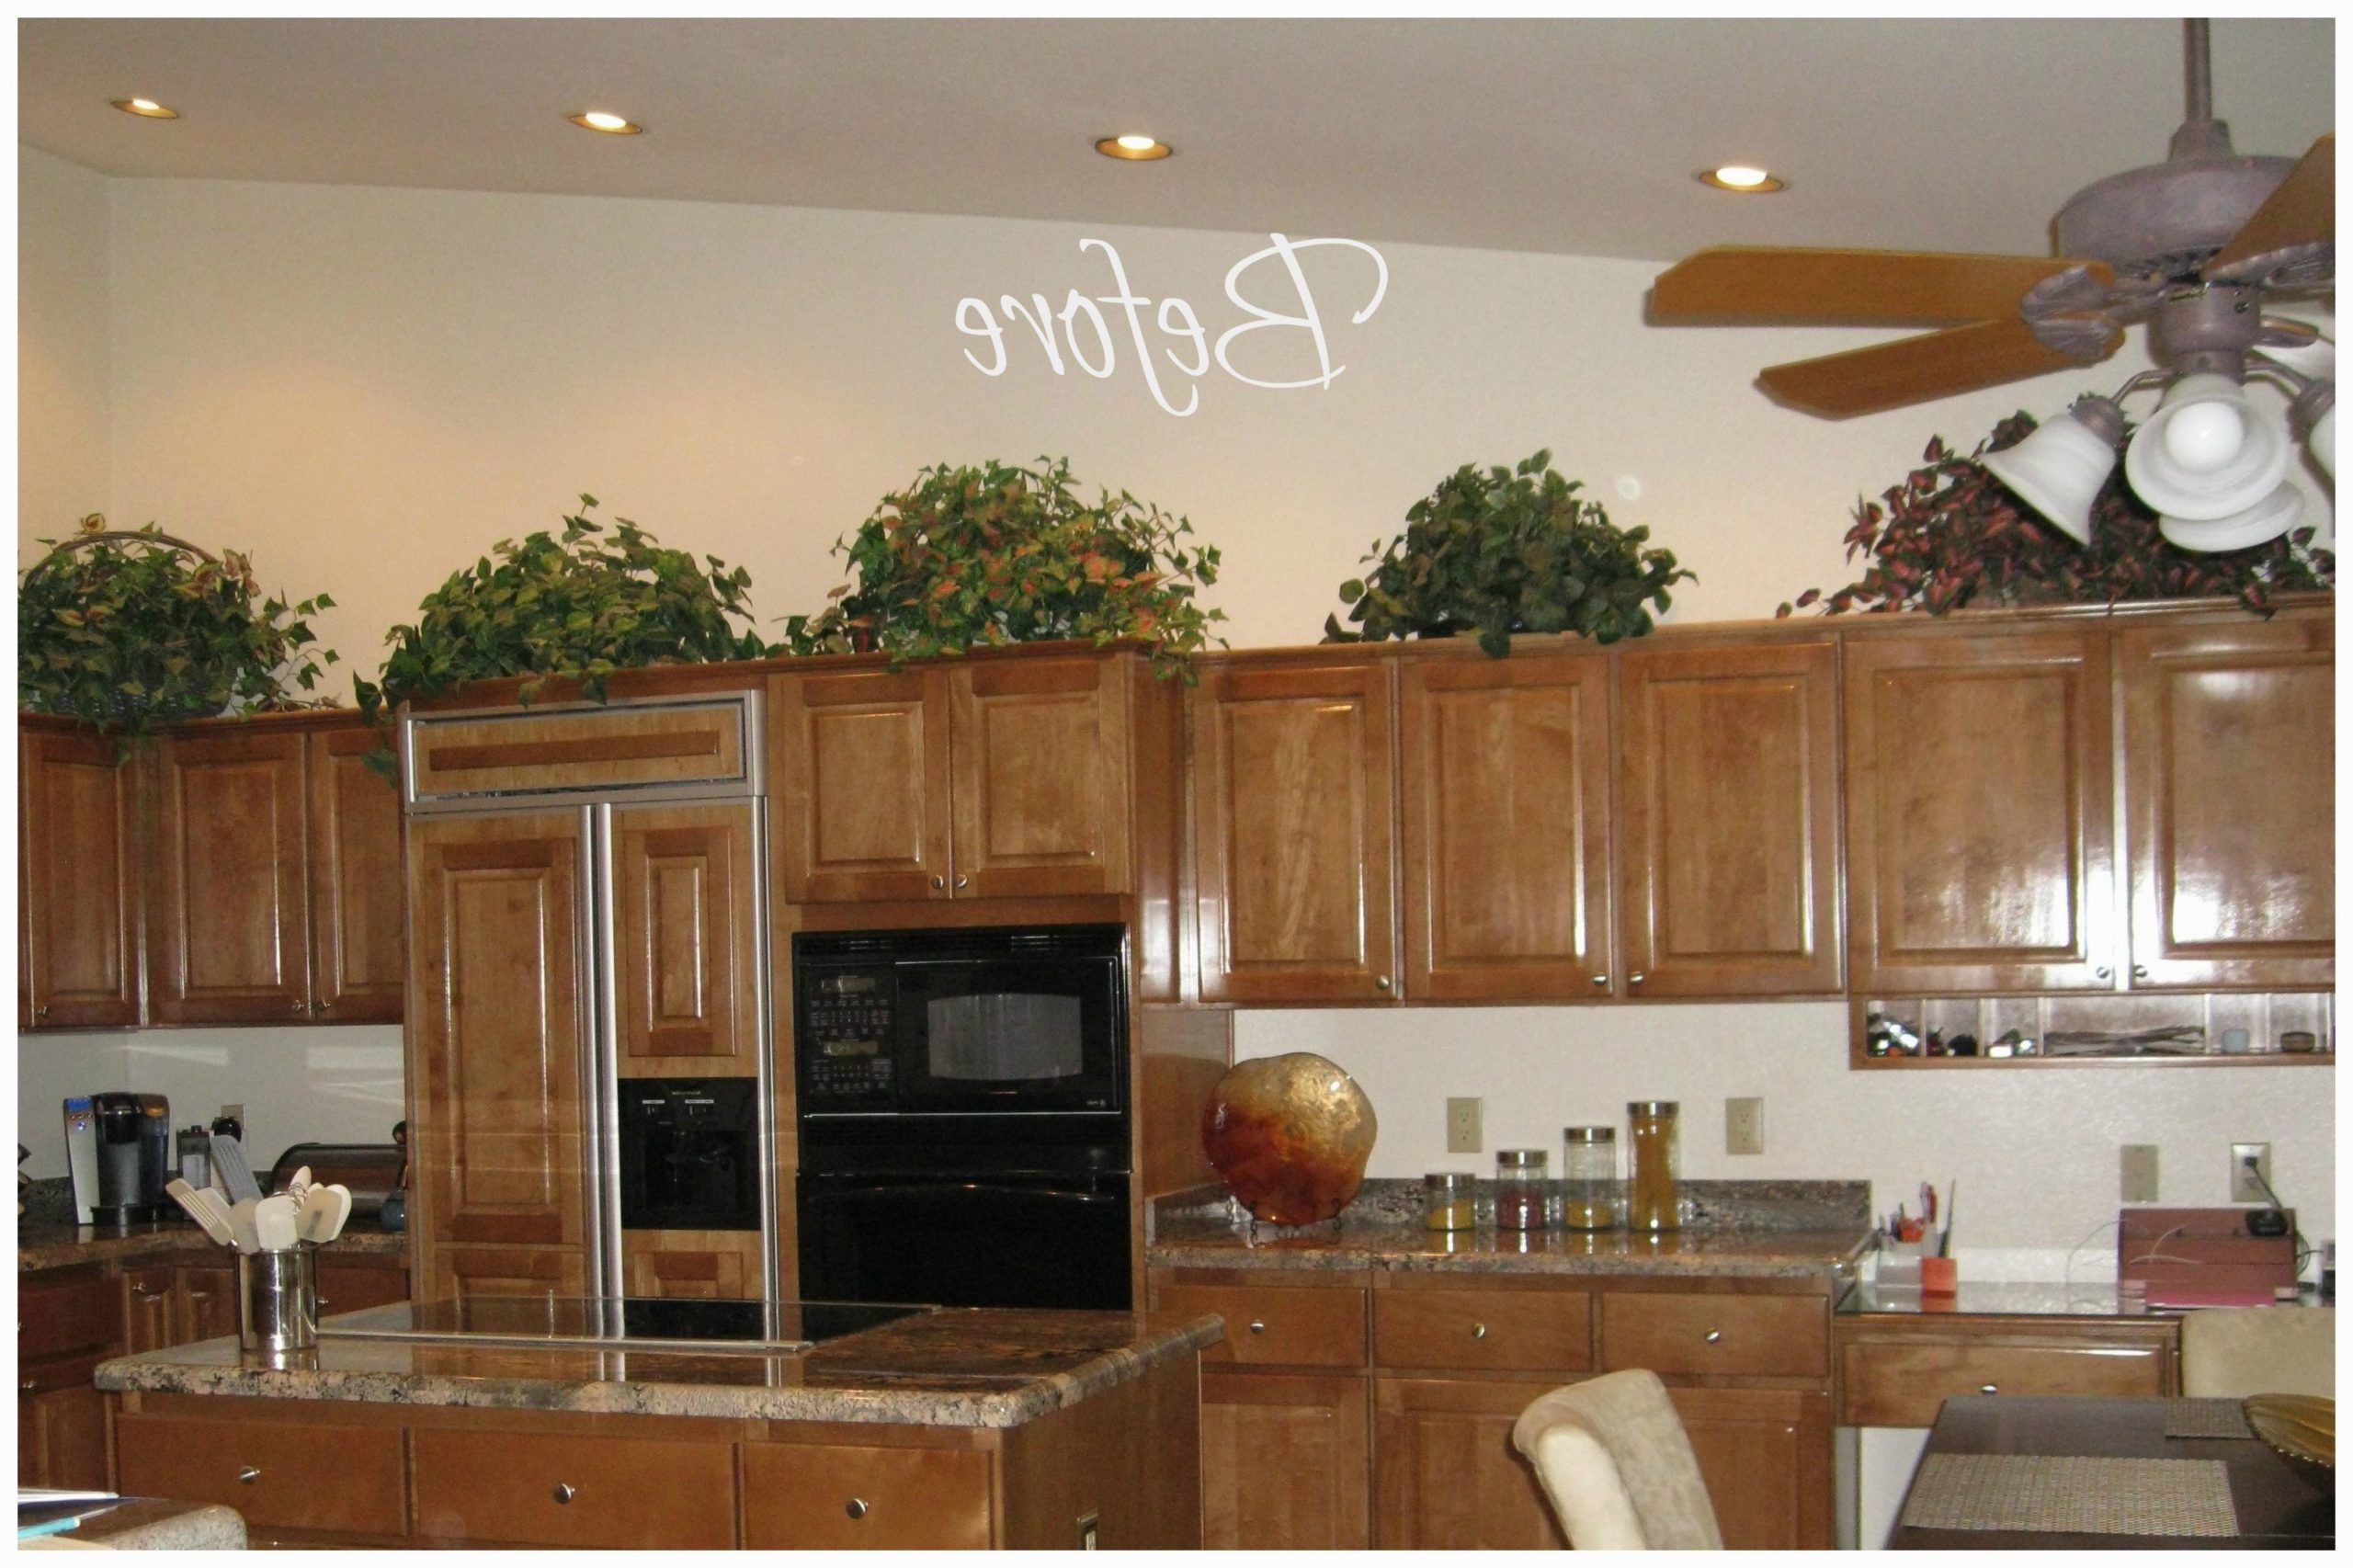 What Will Decorating Ideas For Above Kitchen Cabinets Be Like In The Next 5 Years In 2020 Kitchen Decor Kitchen Cabinets Pictures Chef Kitchen Decor